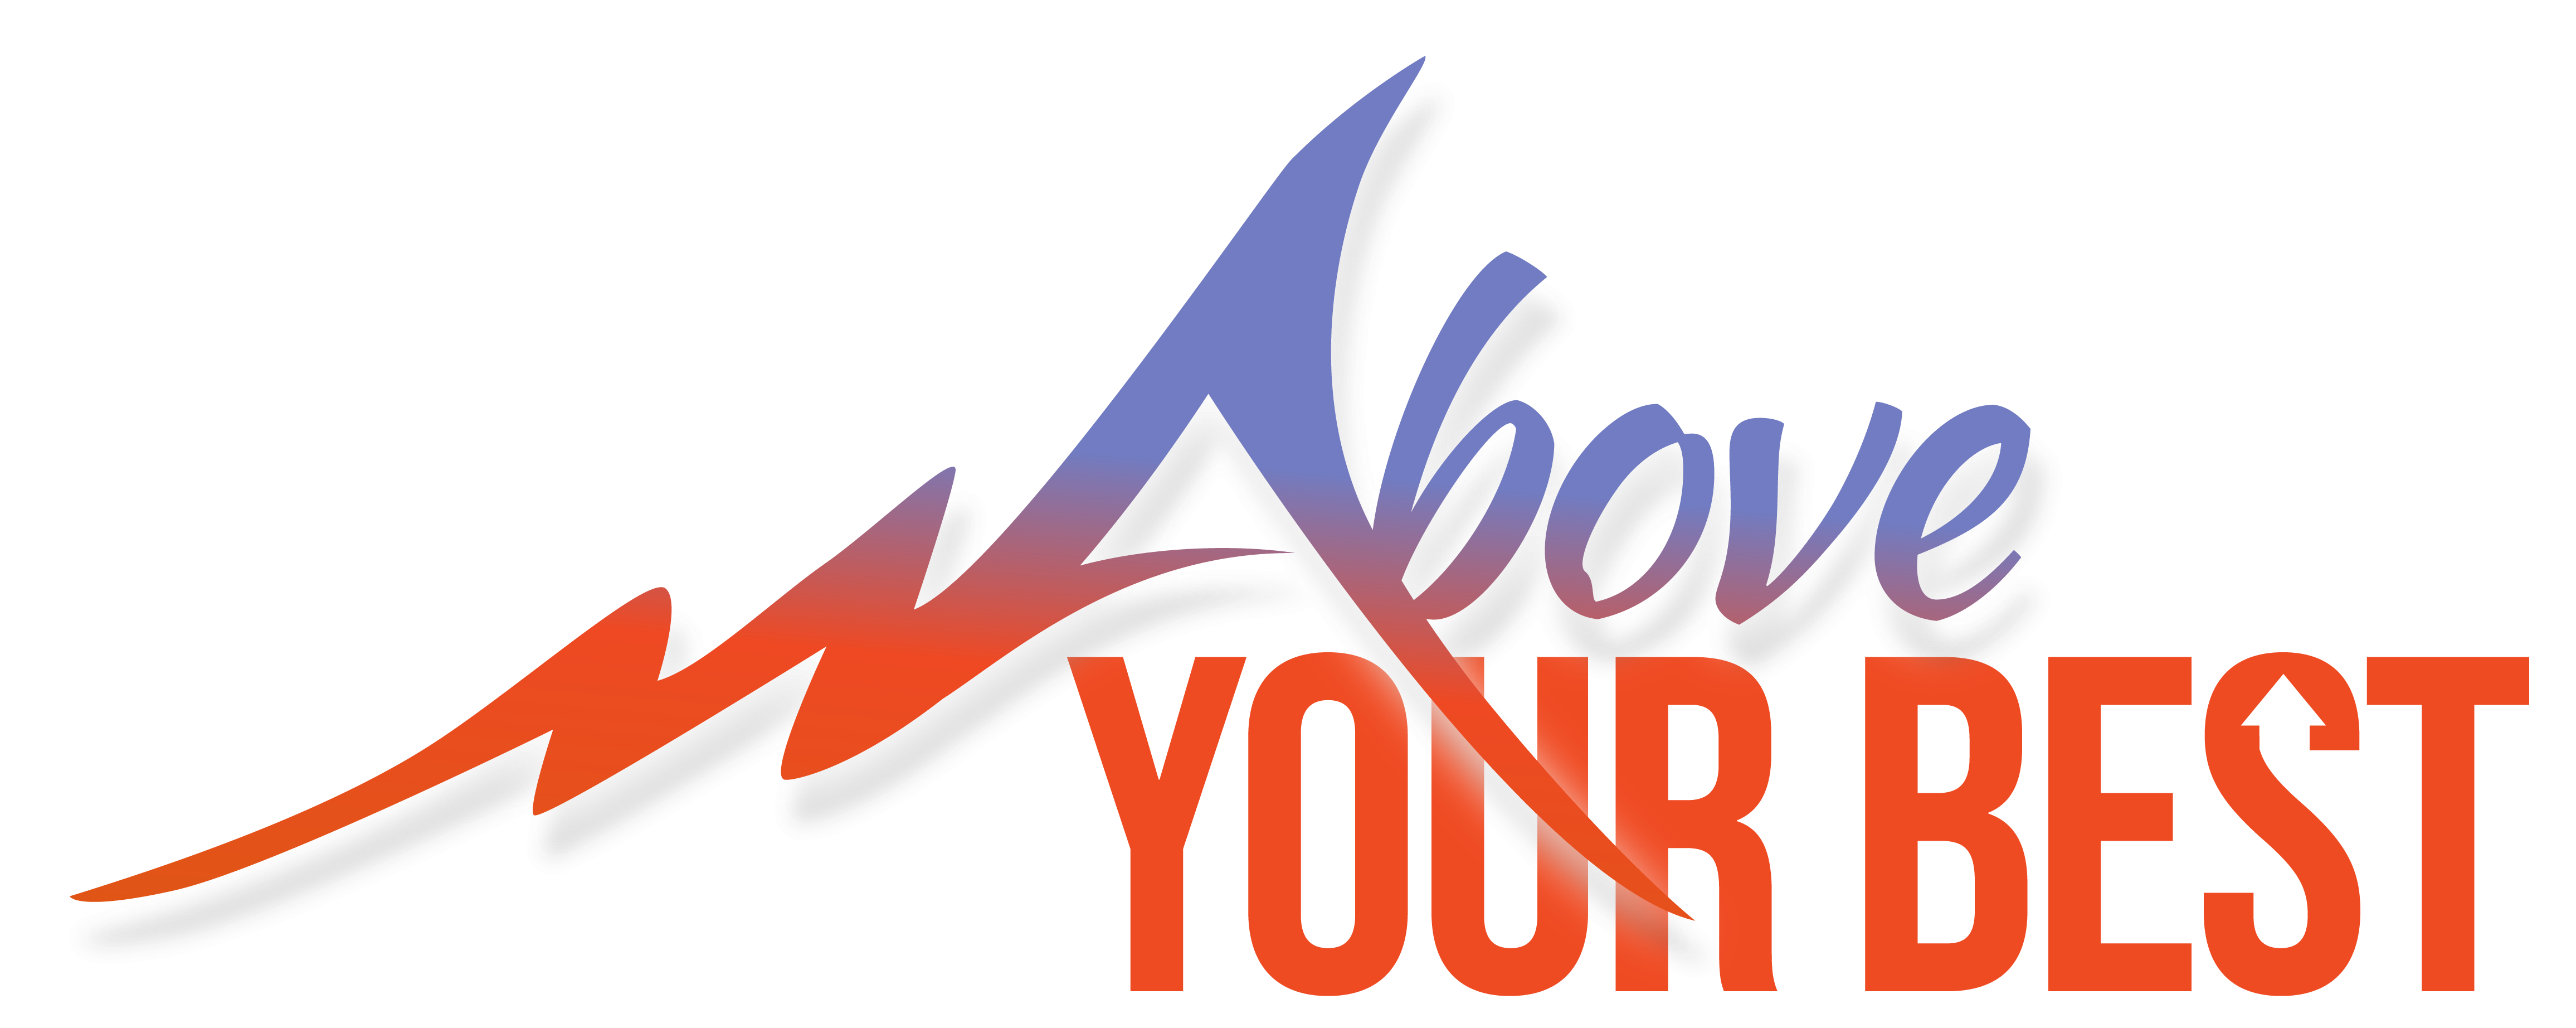 https://thebestyouexpo.com/mia/wp-content/uploads/2019/10/Above-Your-Best-Logo_3D.png